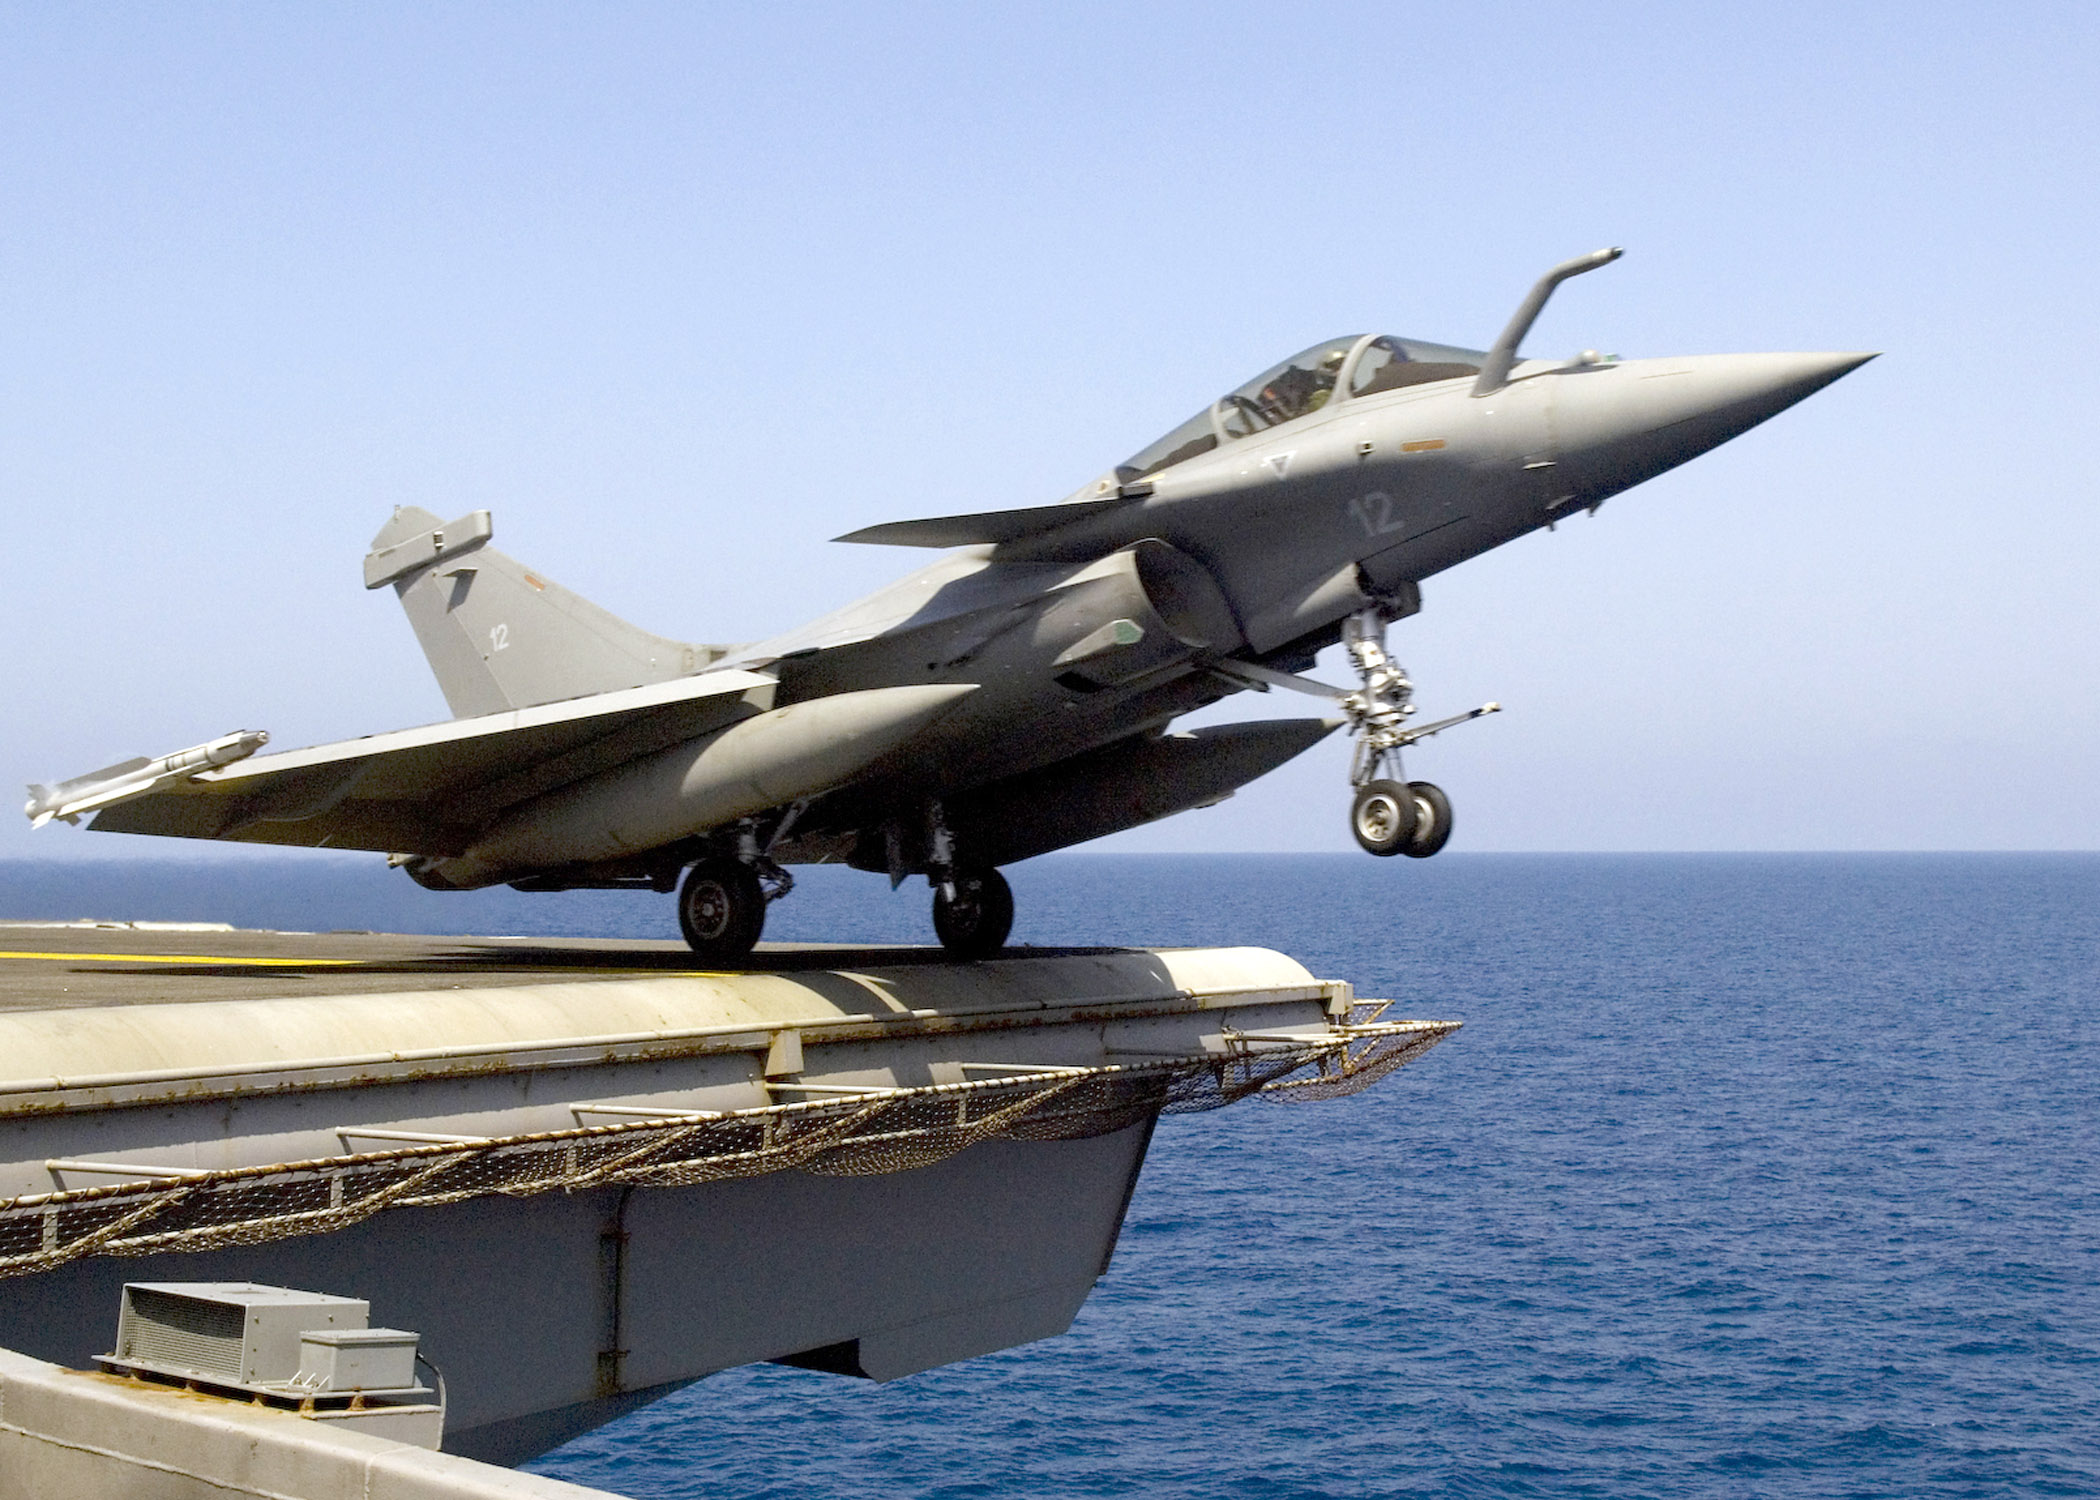 http://upload.wikimedia.org/wikipedia/commons/9/98/French_Rafale_M_launch_from_USS_Enterprise.jpg